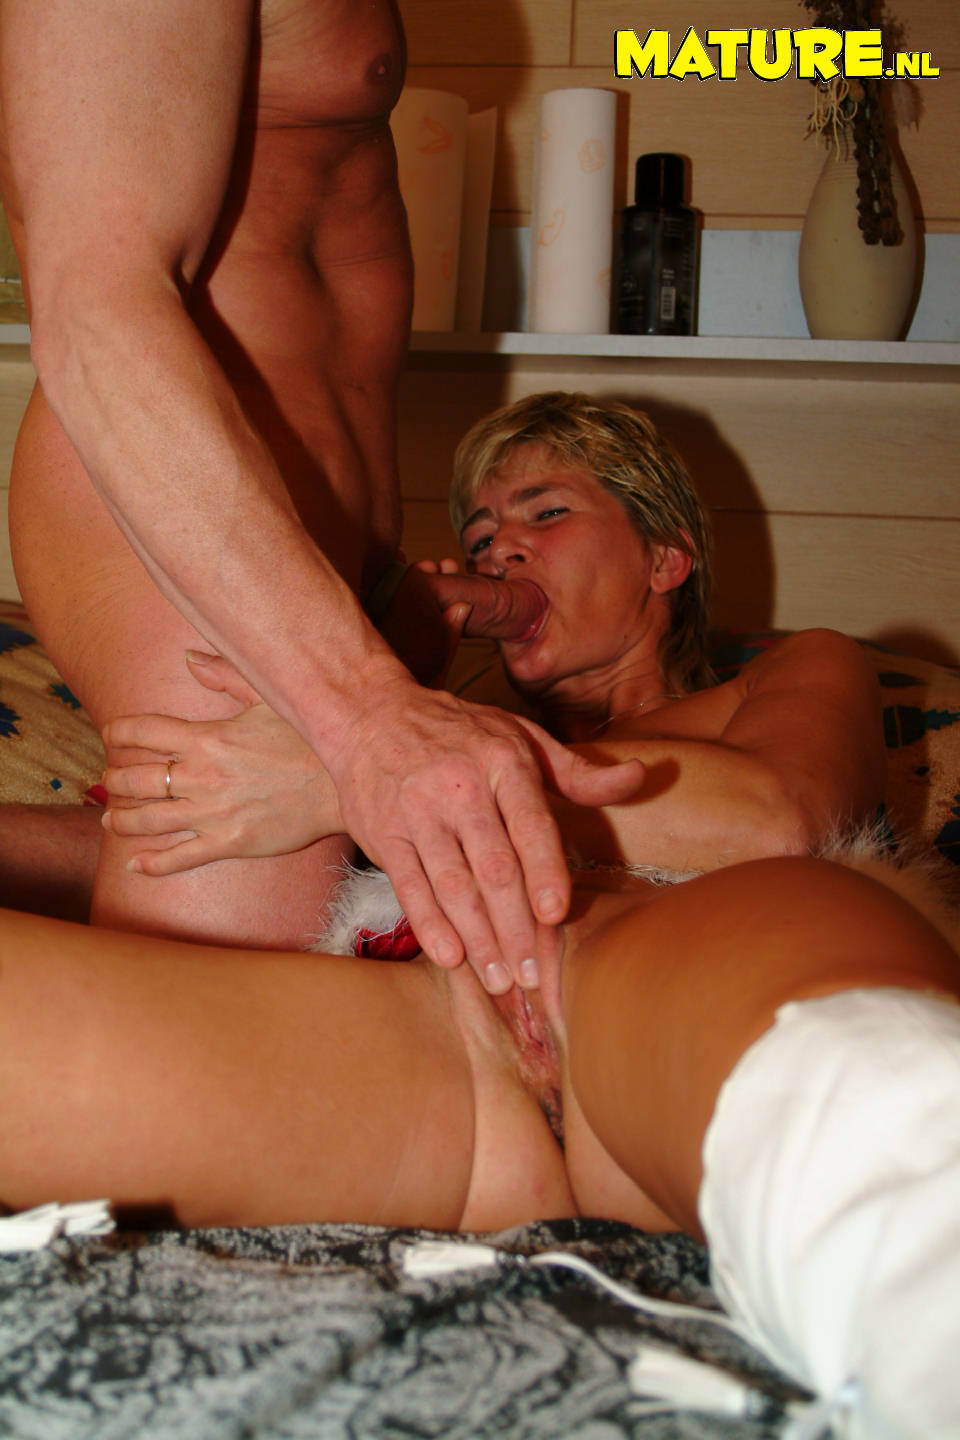 Free mature housewife porn movie streaming